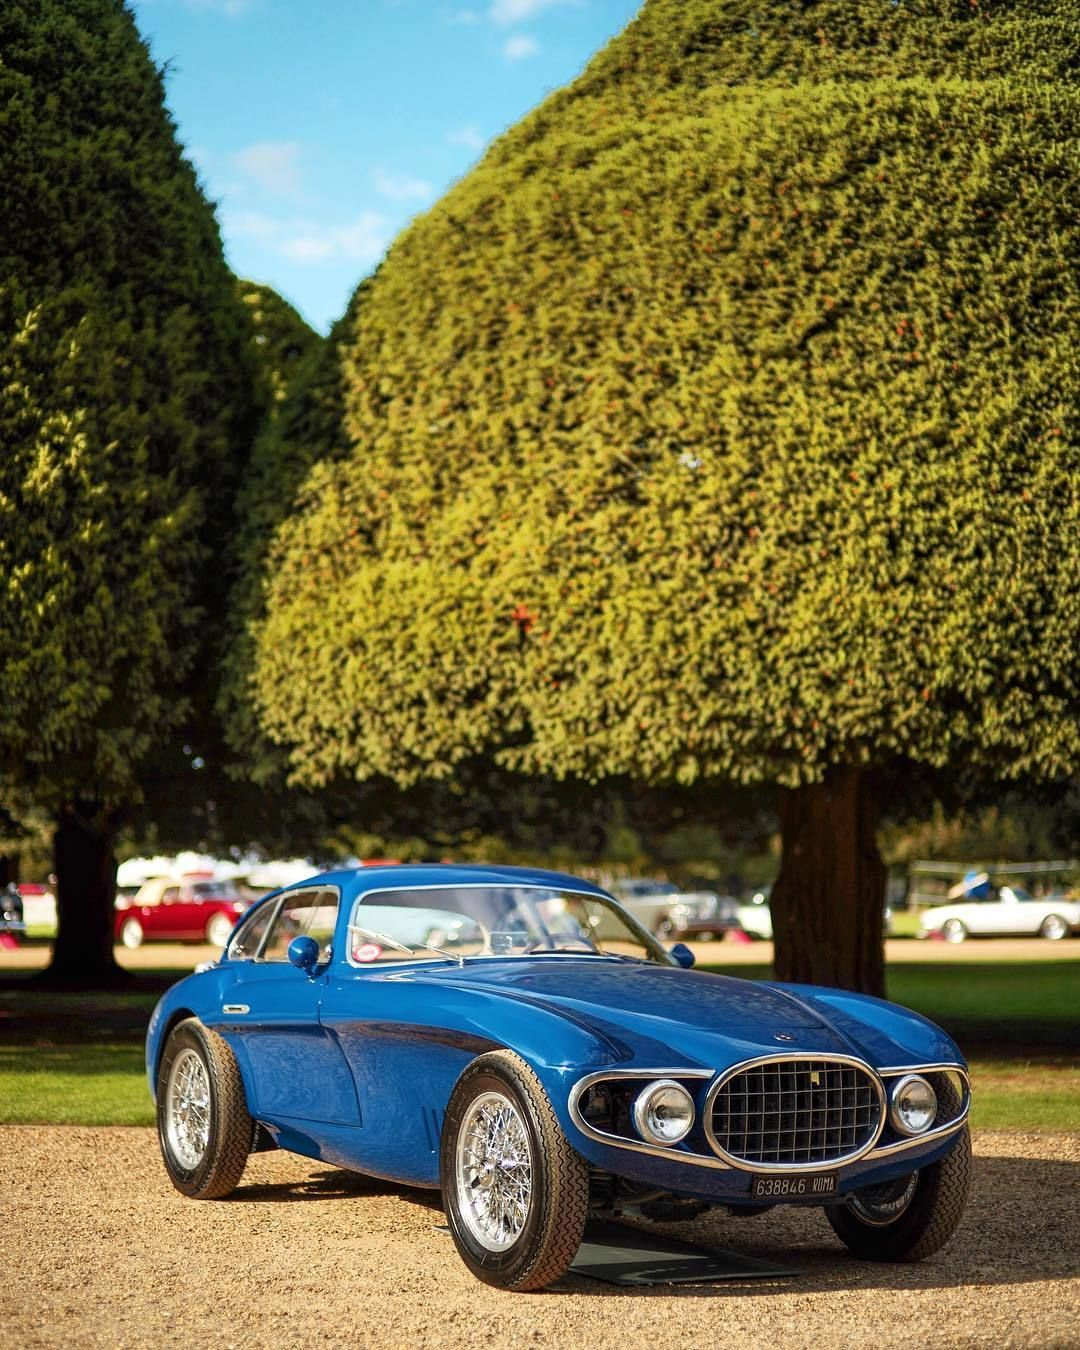 The Osca Mt4 Lm Sports Cars Luxury Classic Sports Cars Classic